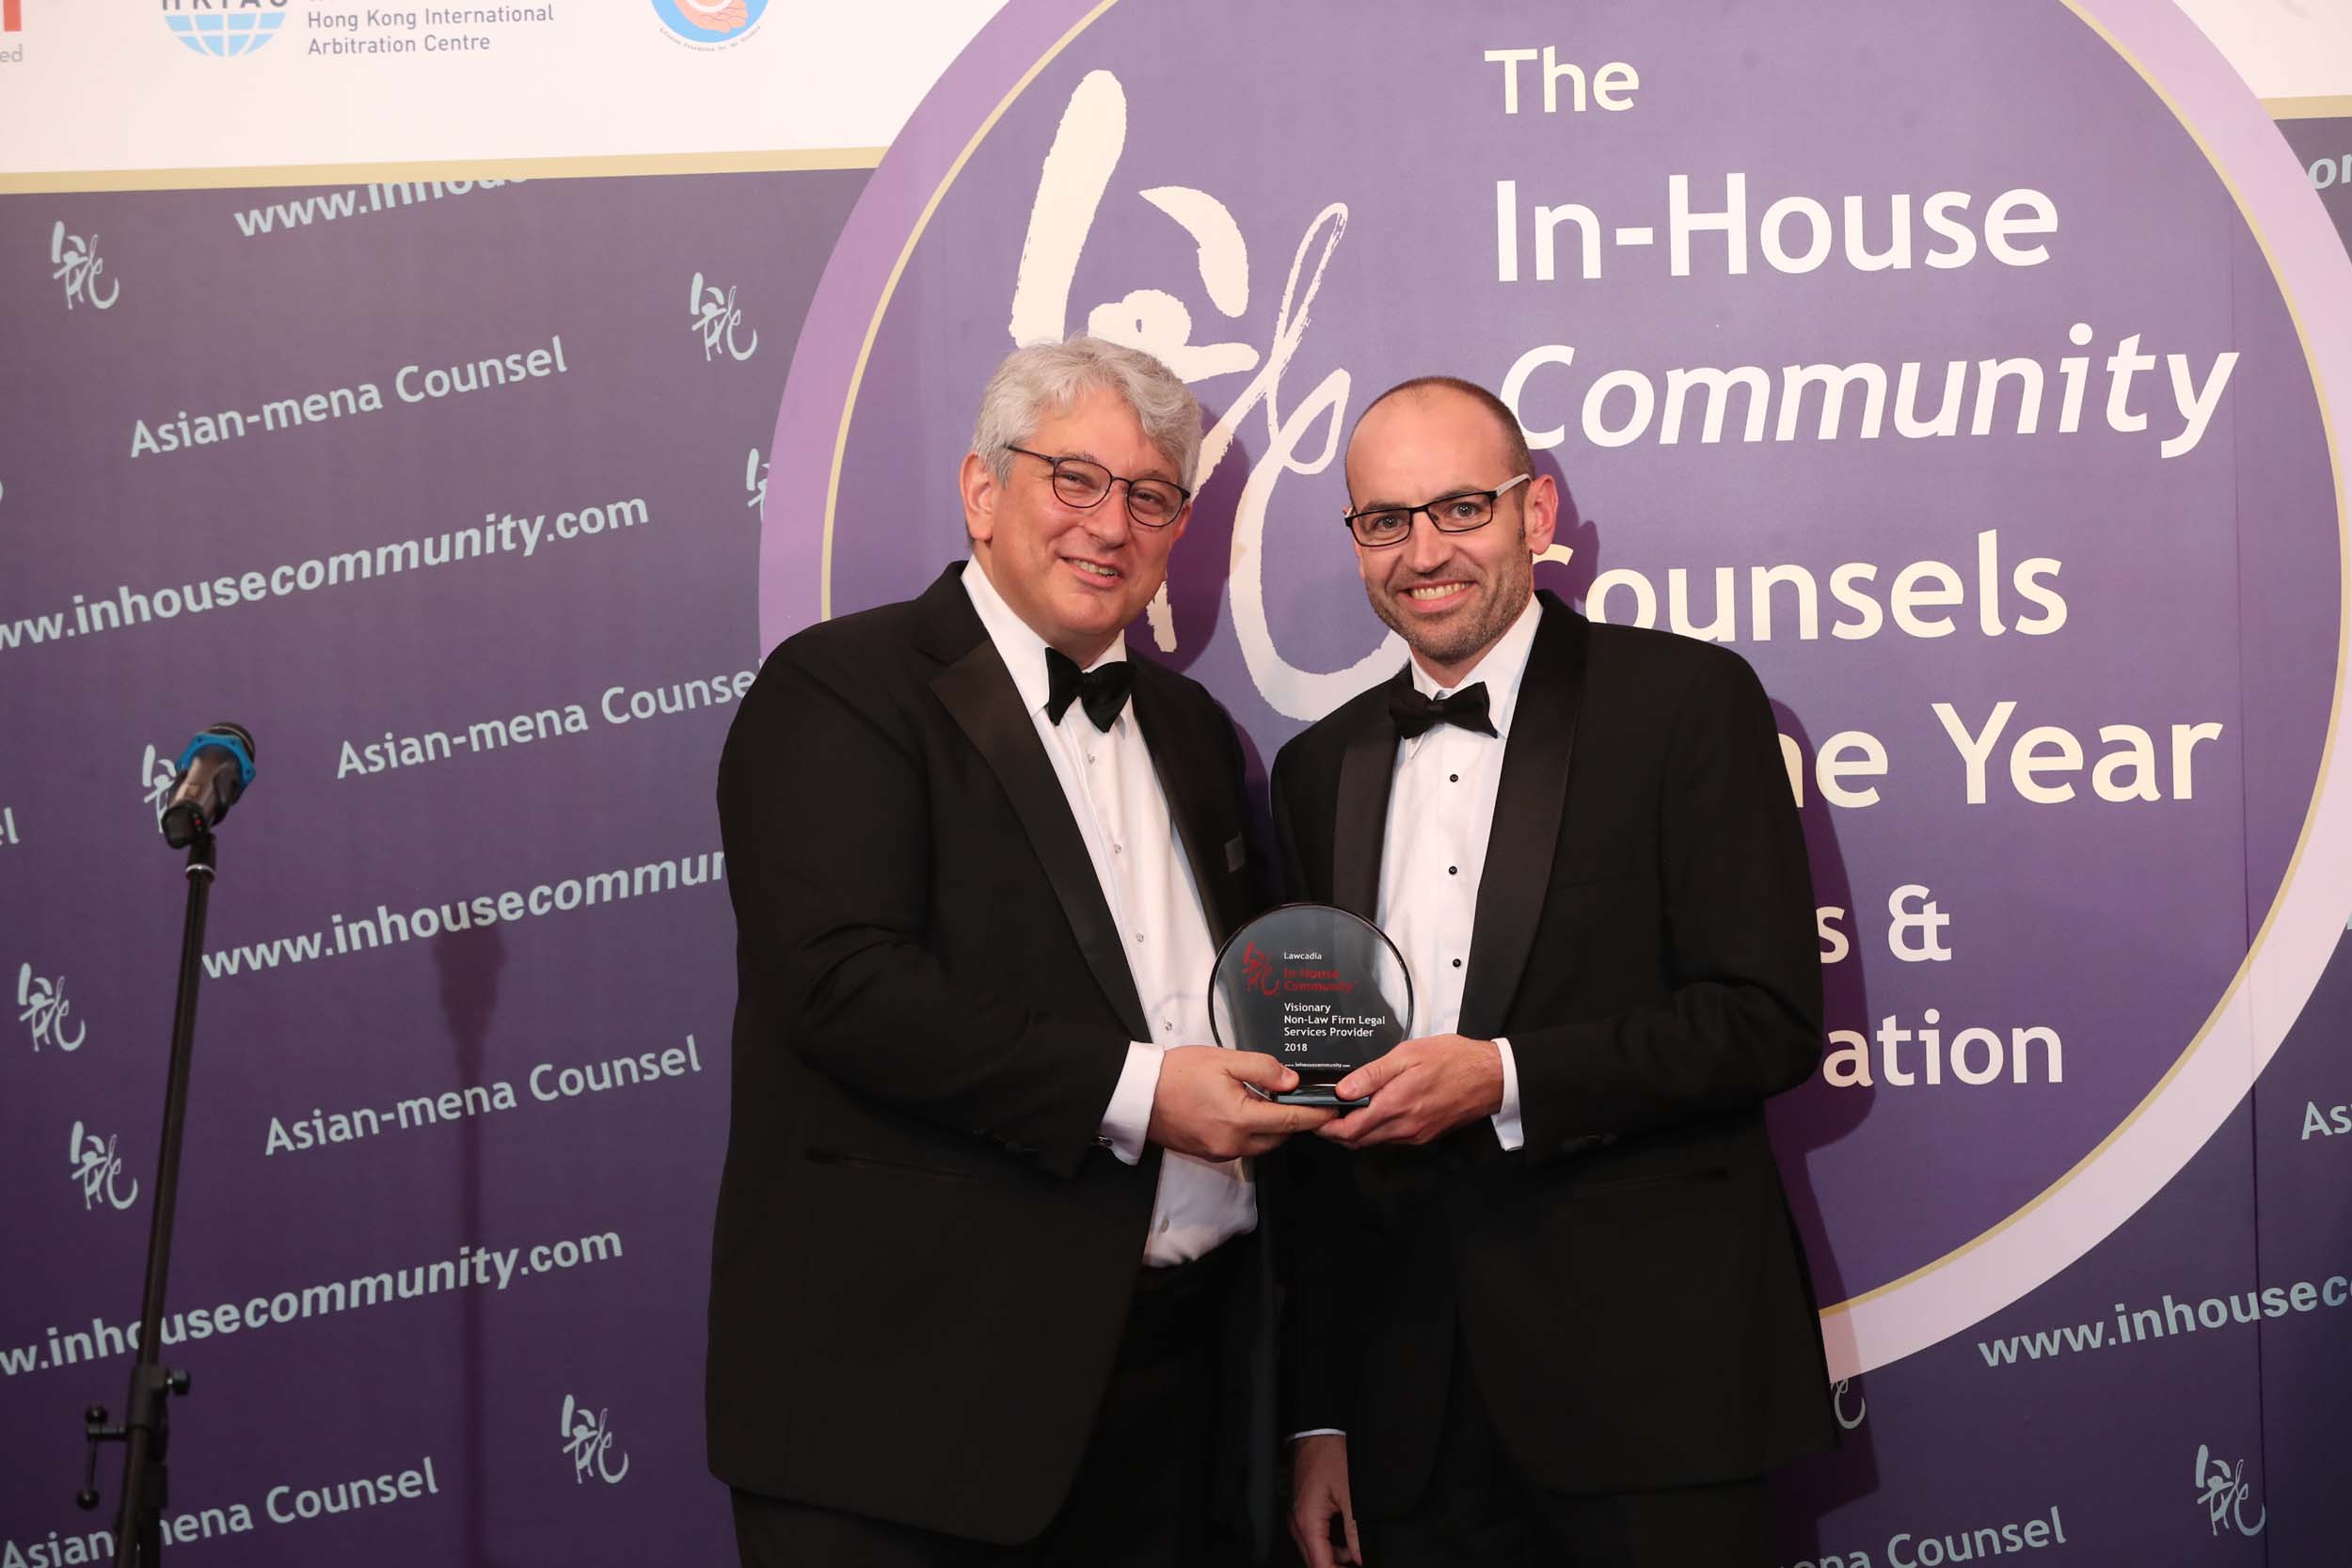 In-House Community Counsels of the Year 2018 - In-House